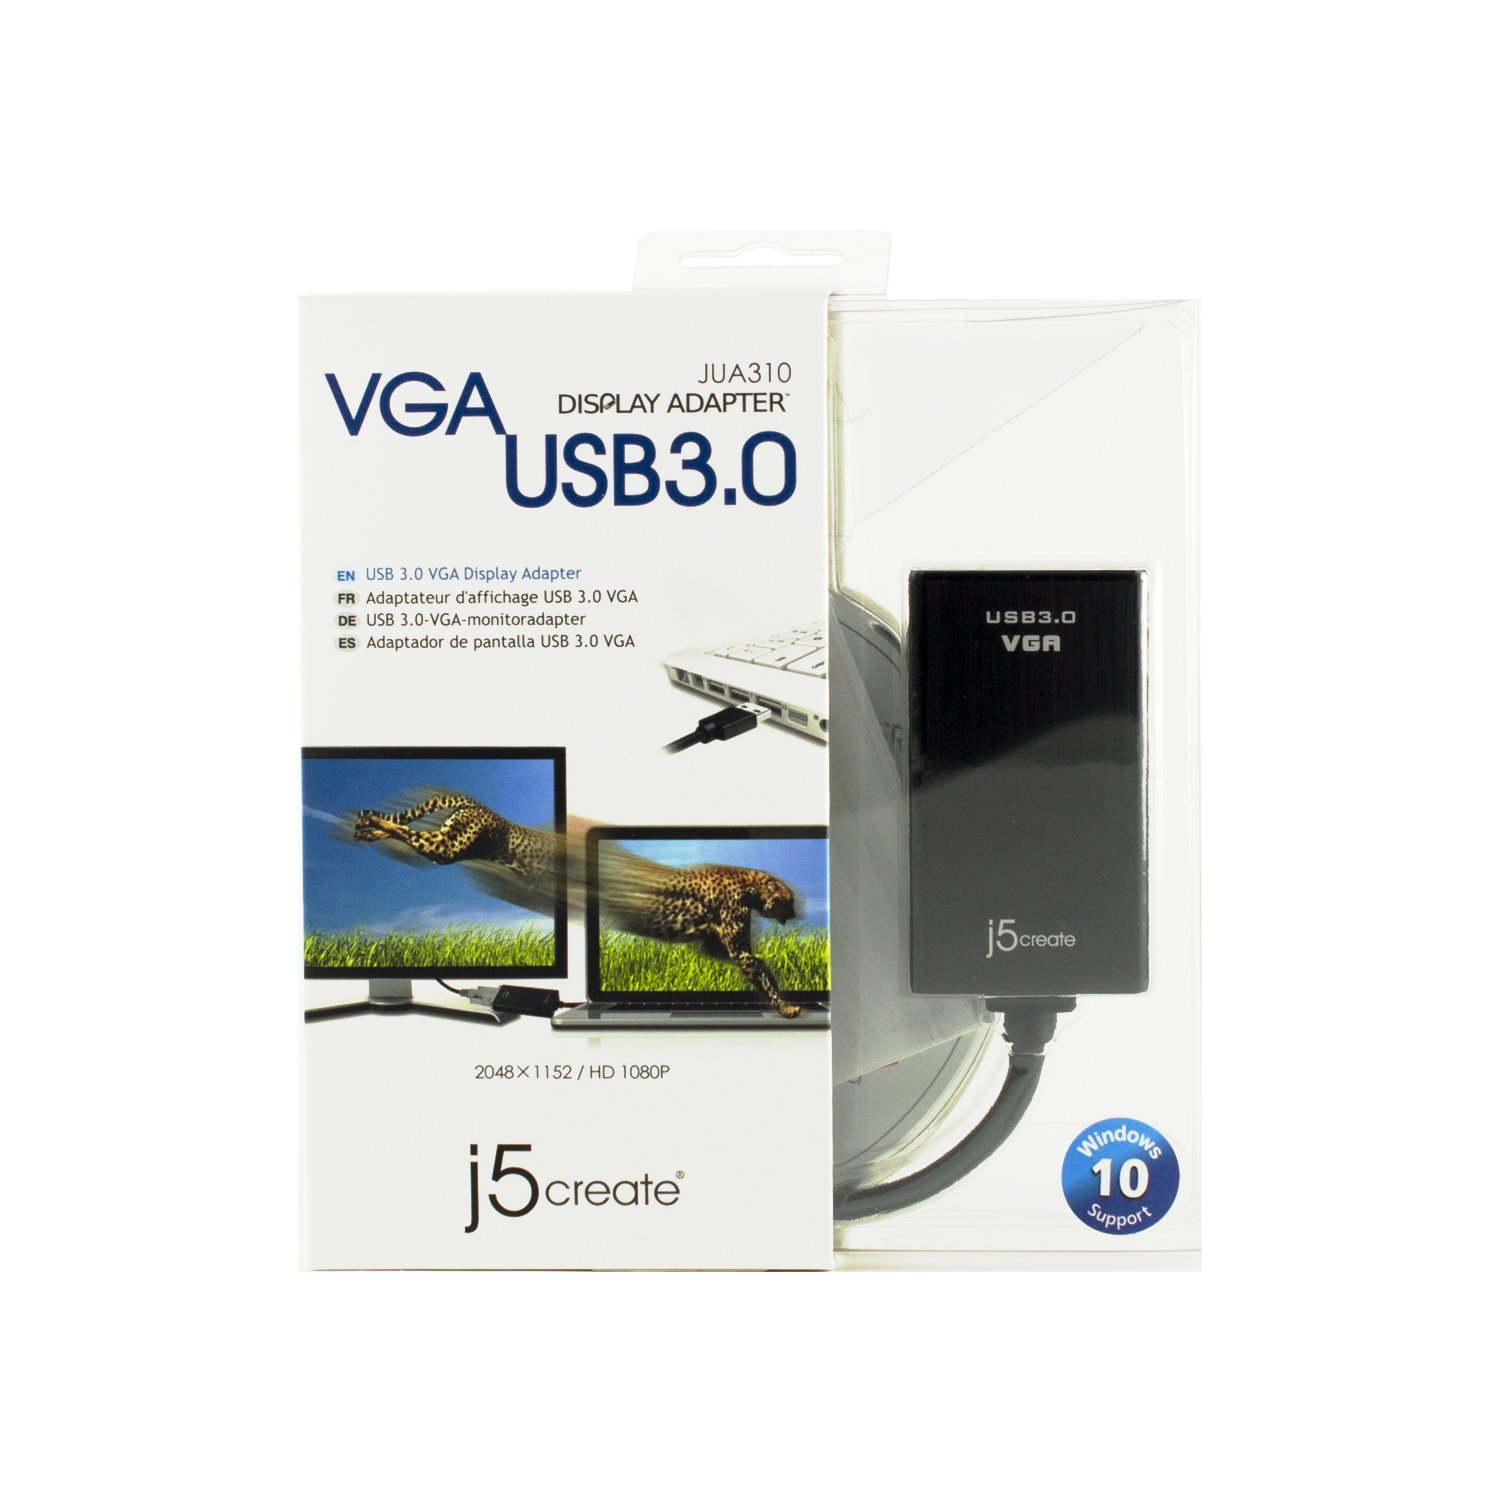 J5CREATE JUA310 USB 3.0 GRAPHICS ADAPTER WINDOWS 8